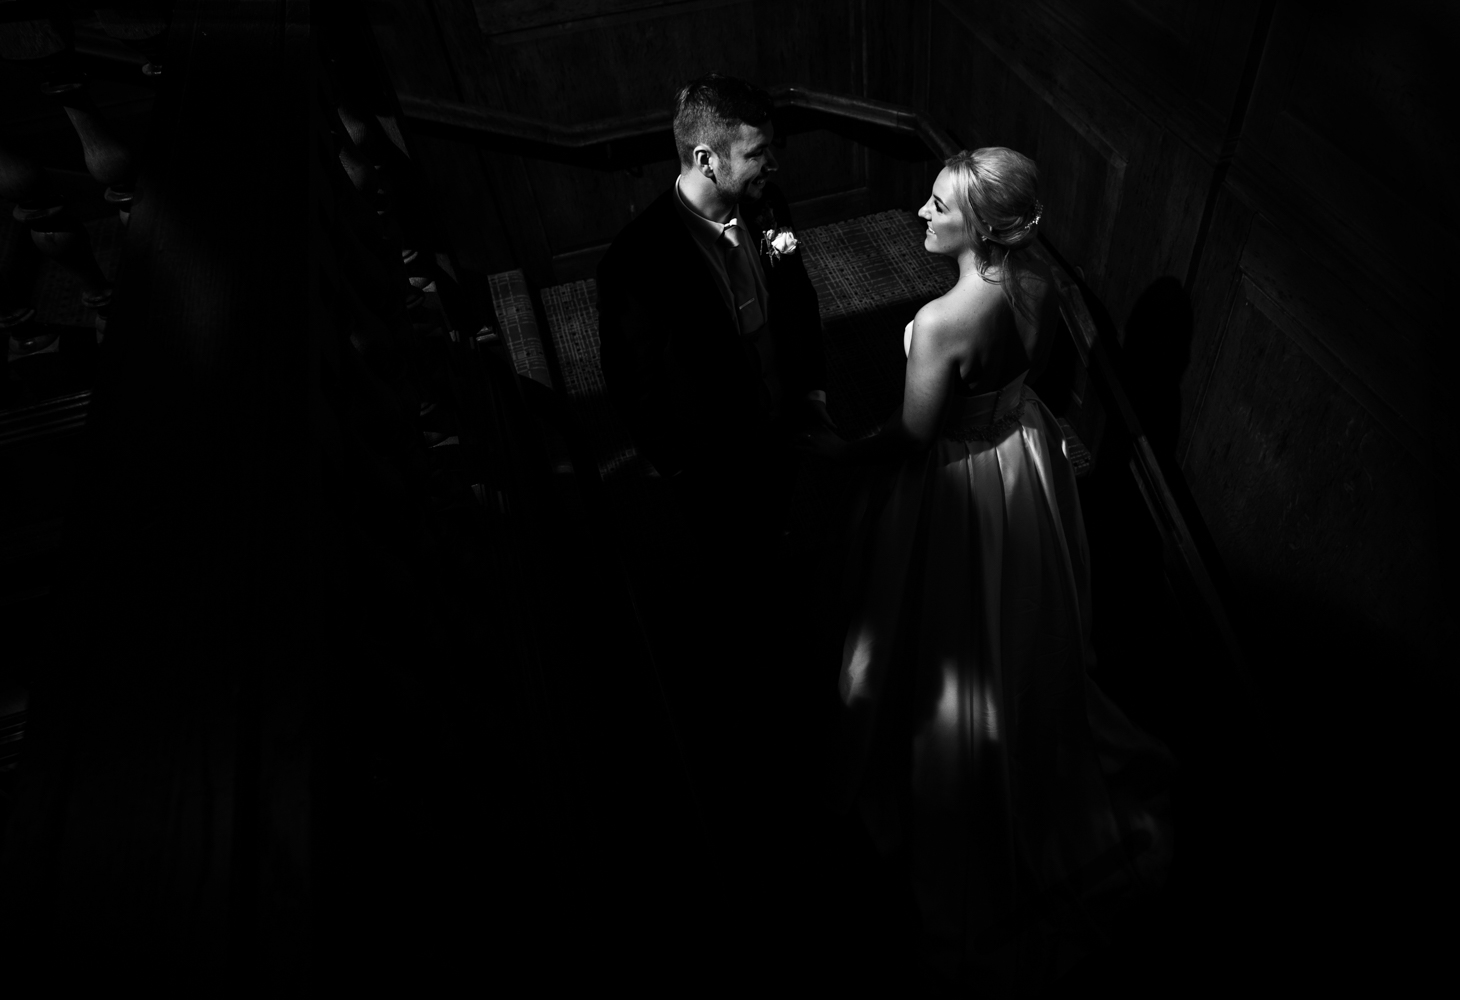 Black and white image of the happy couple taken on the stairs inside the hotel in the dark